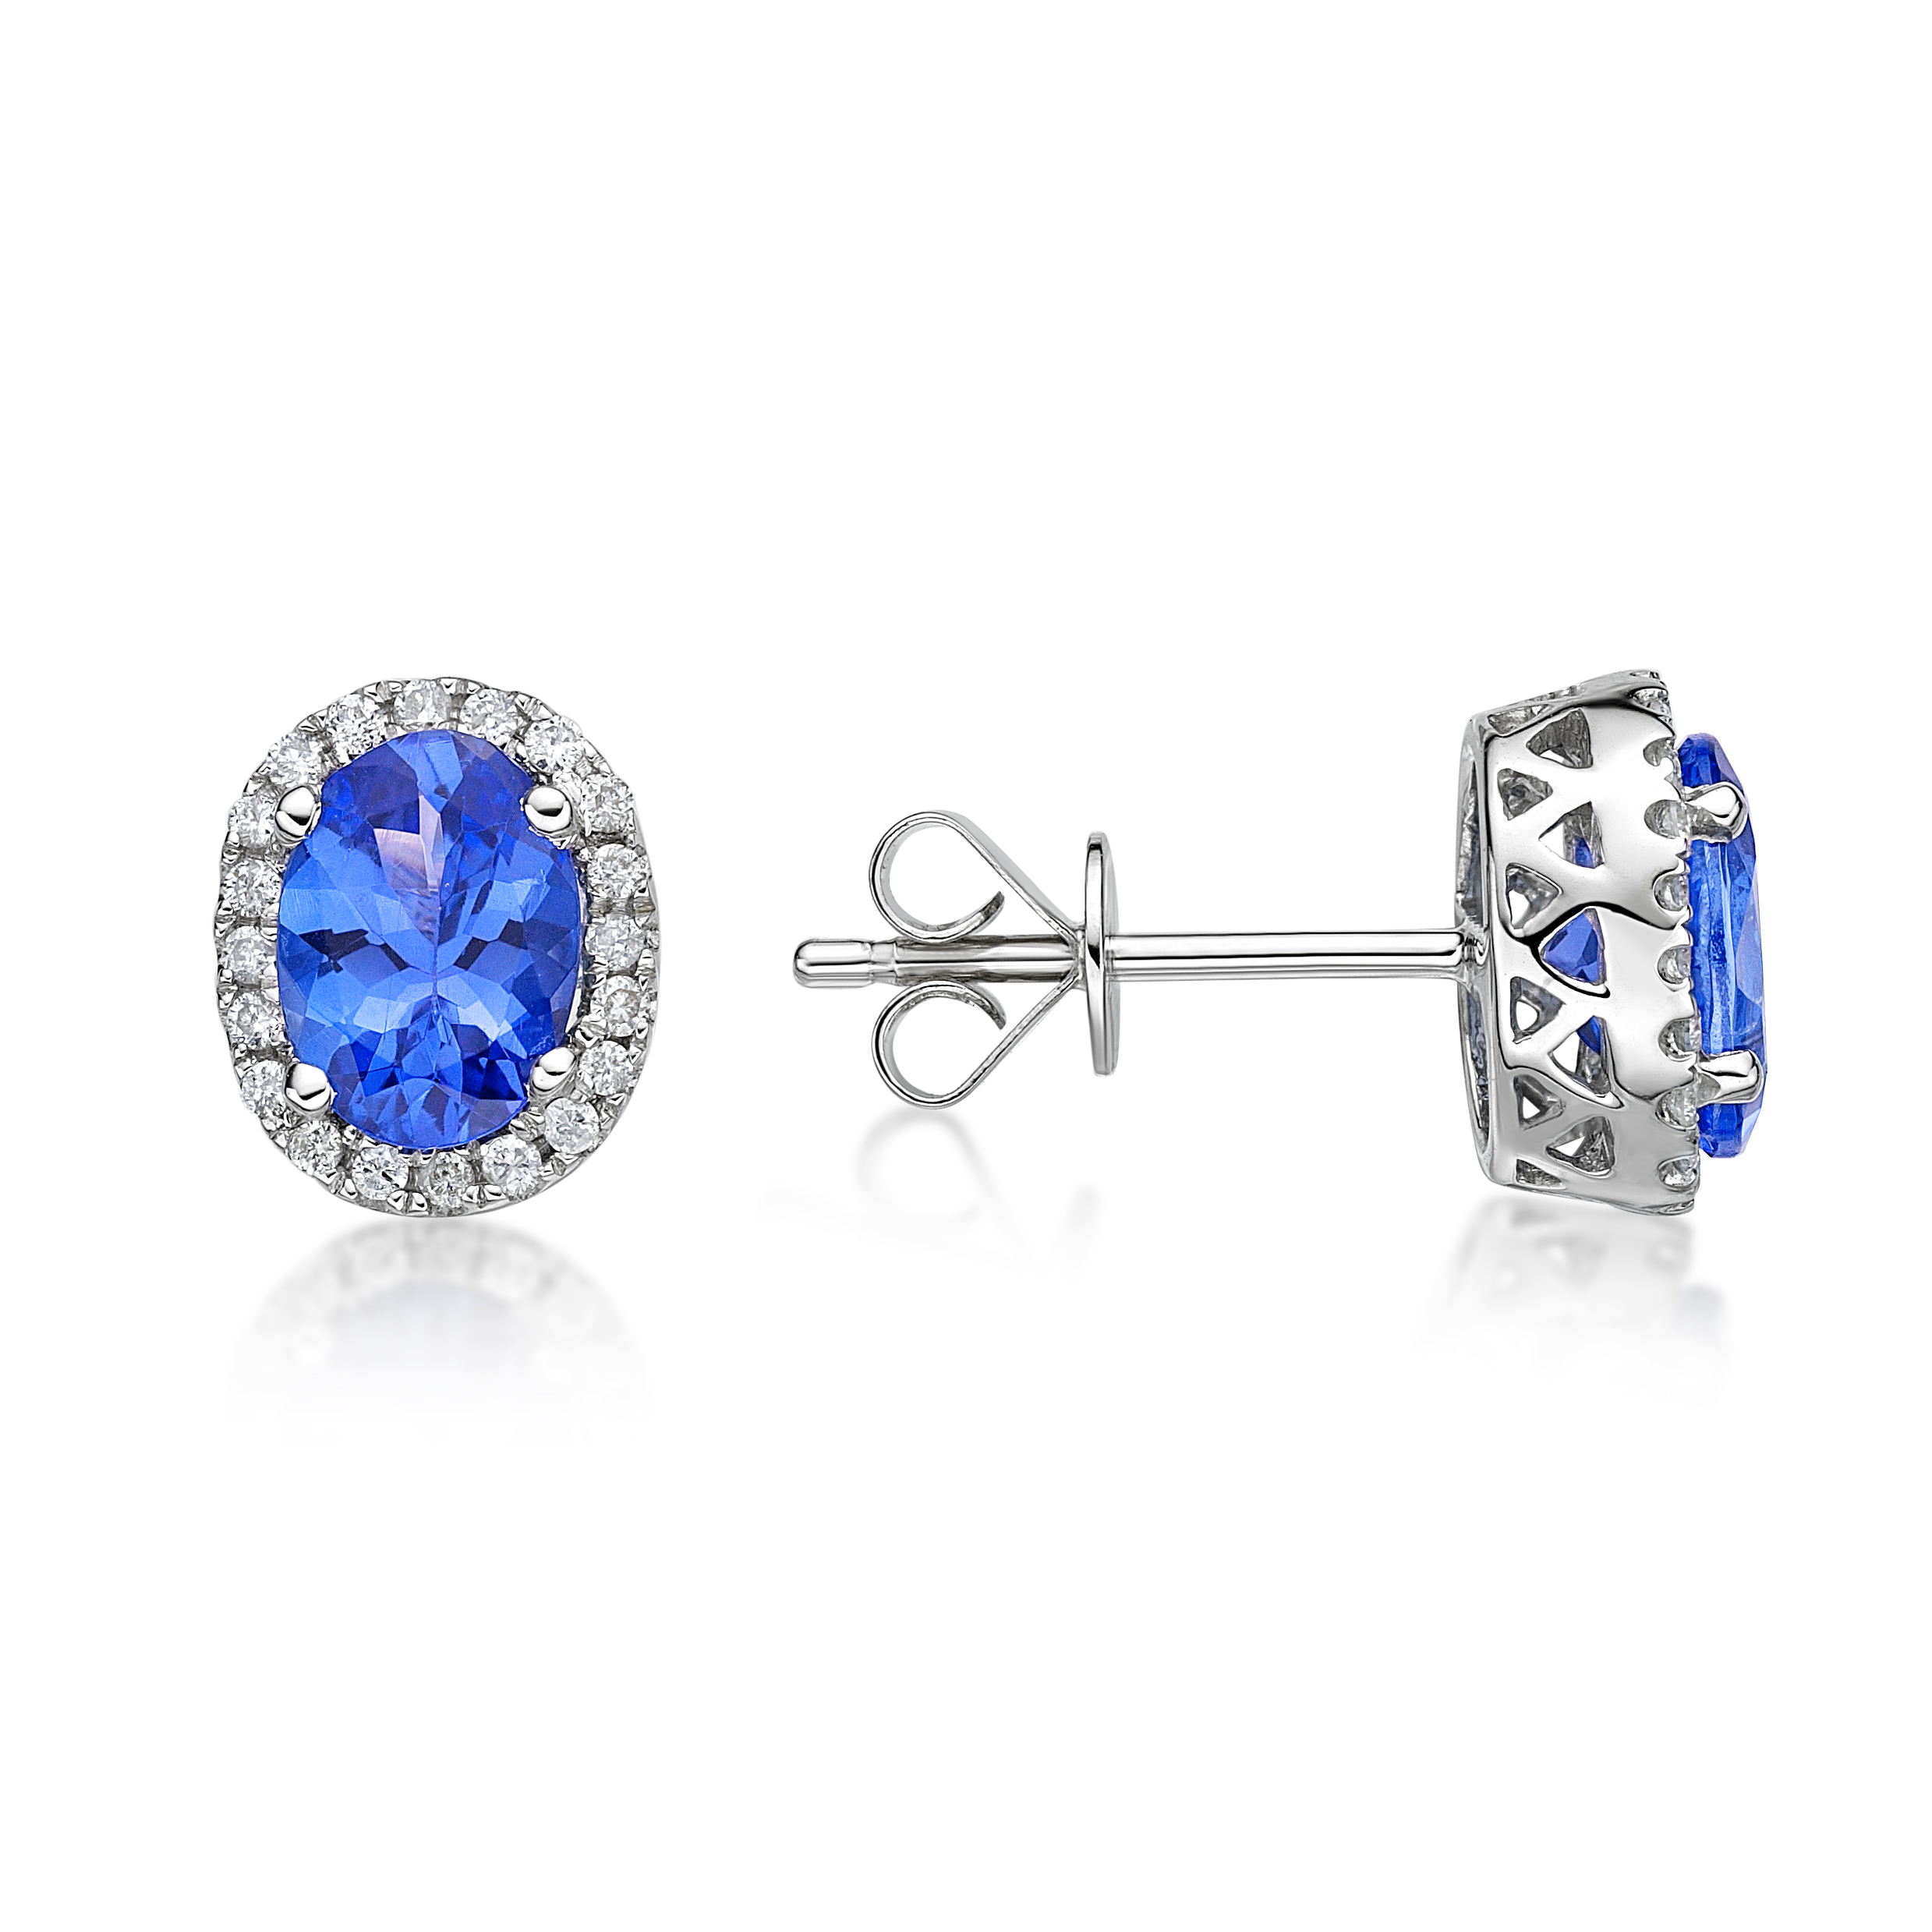 tanzanite earrings 1.45 ct tanzanite u0026 diamond halo stud earrings lzdgnyo